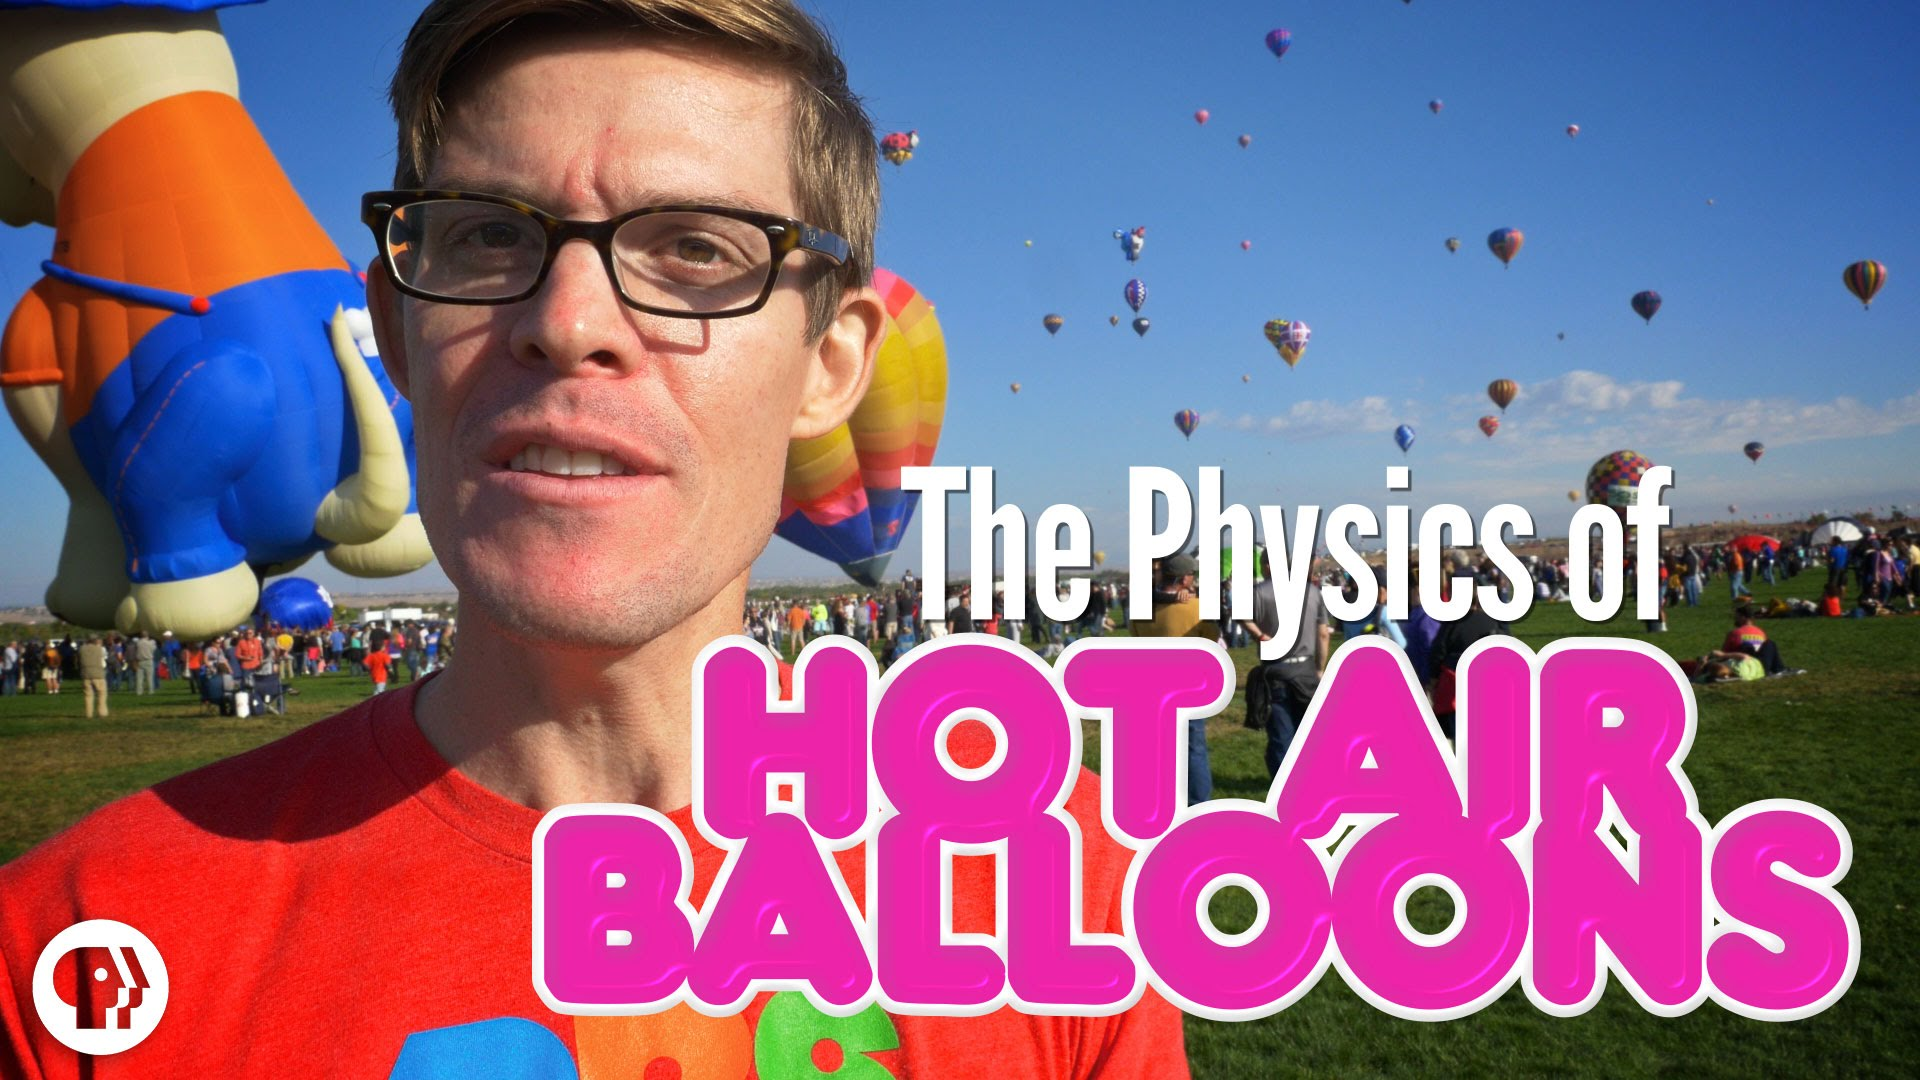 How Hot Balloons really work ?